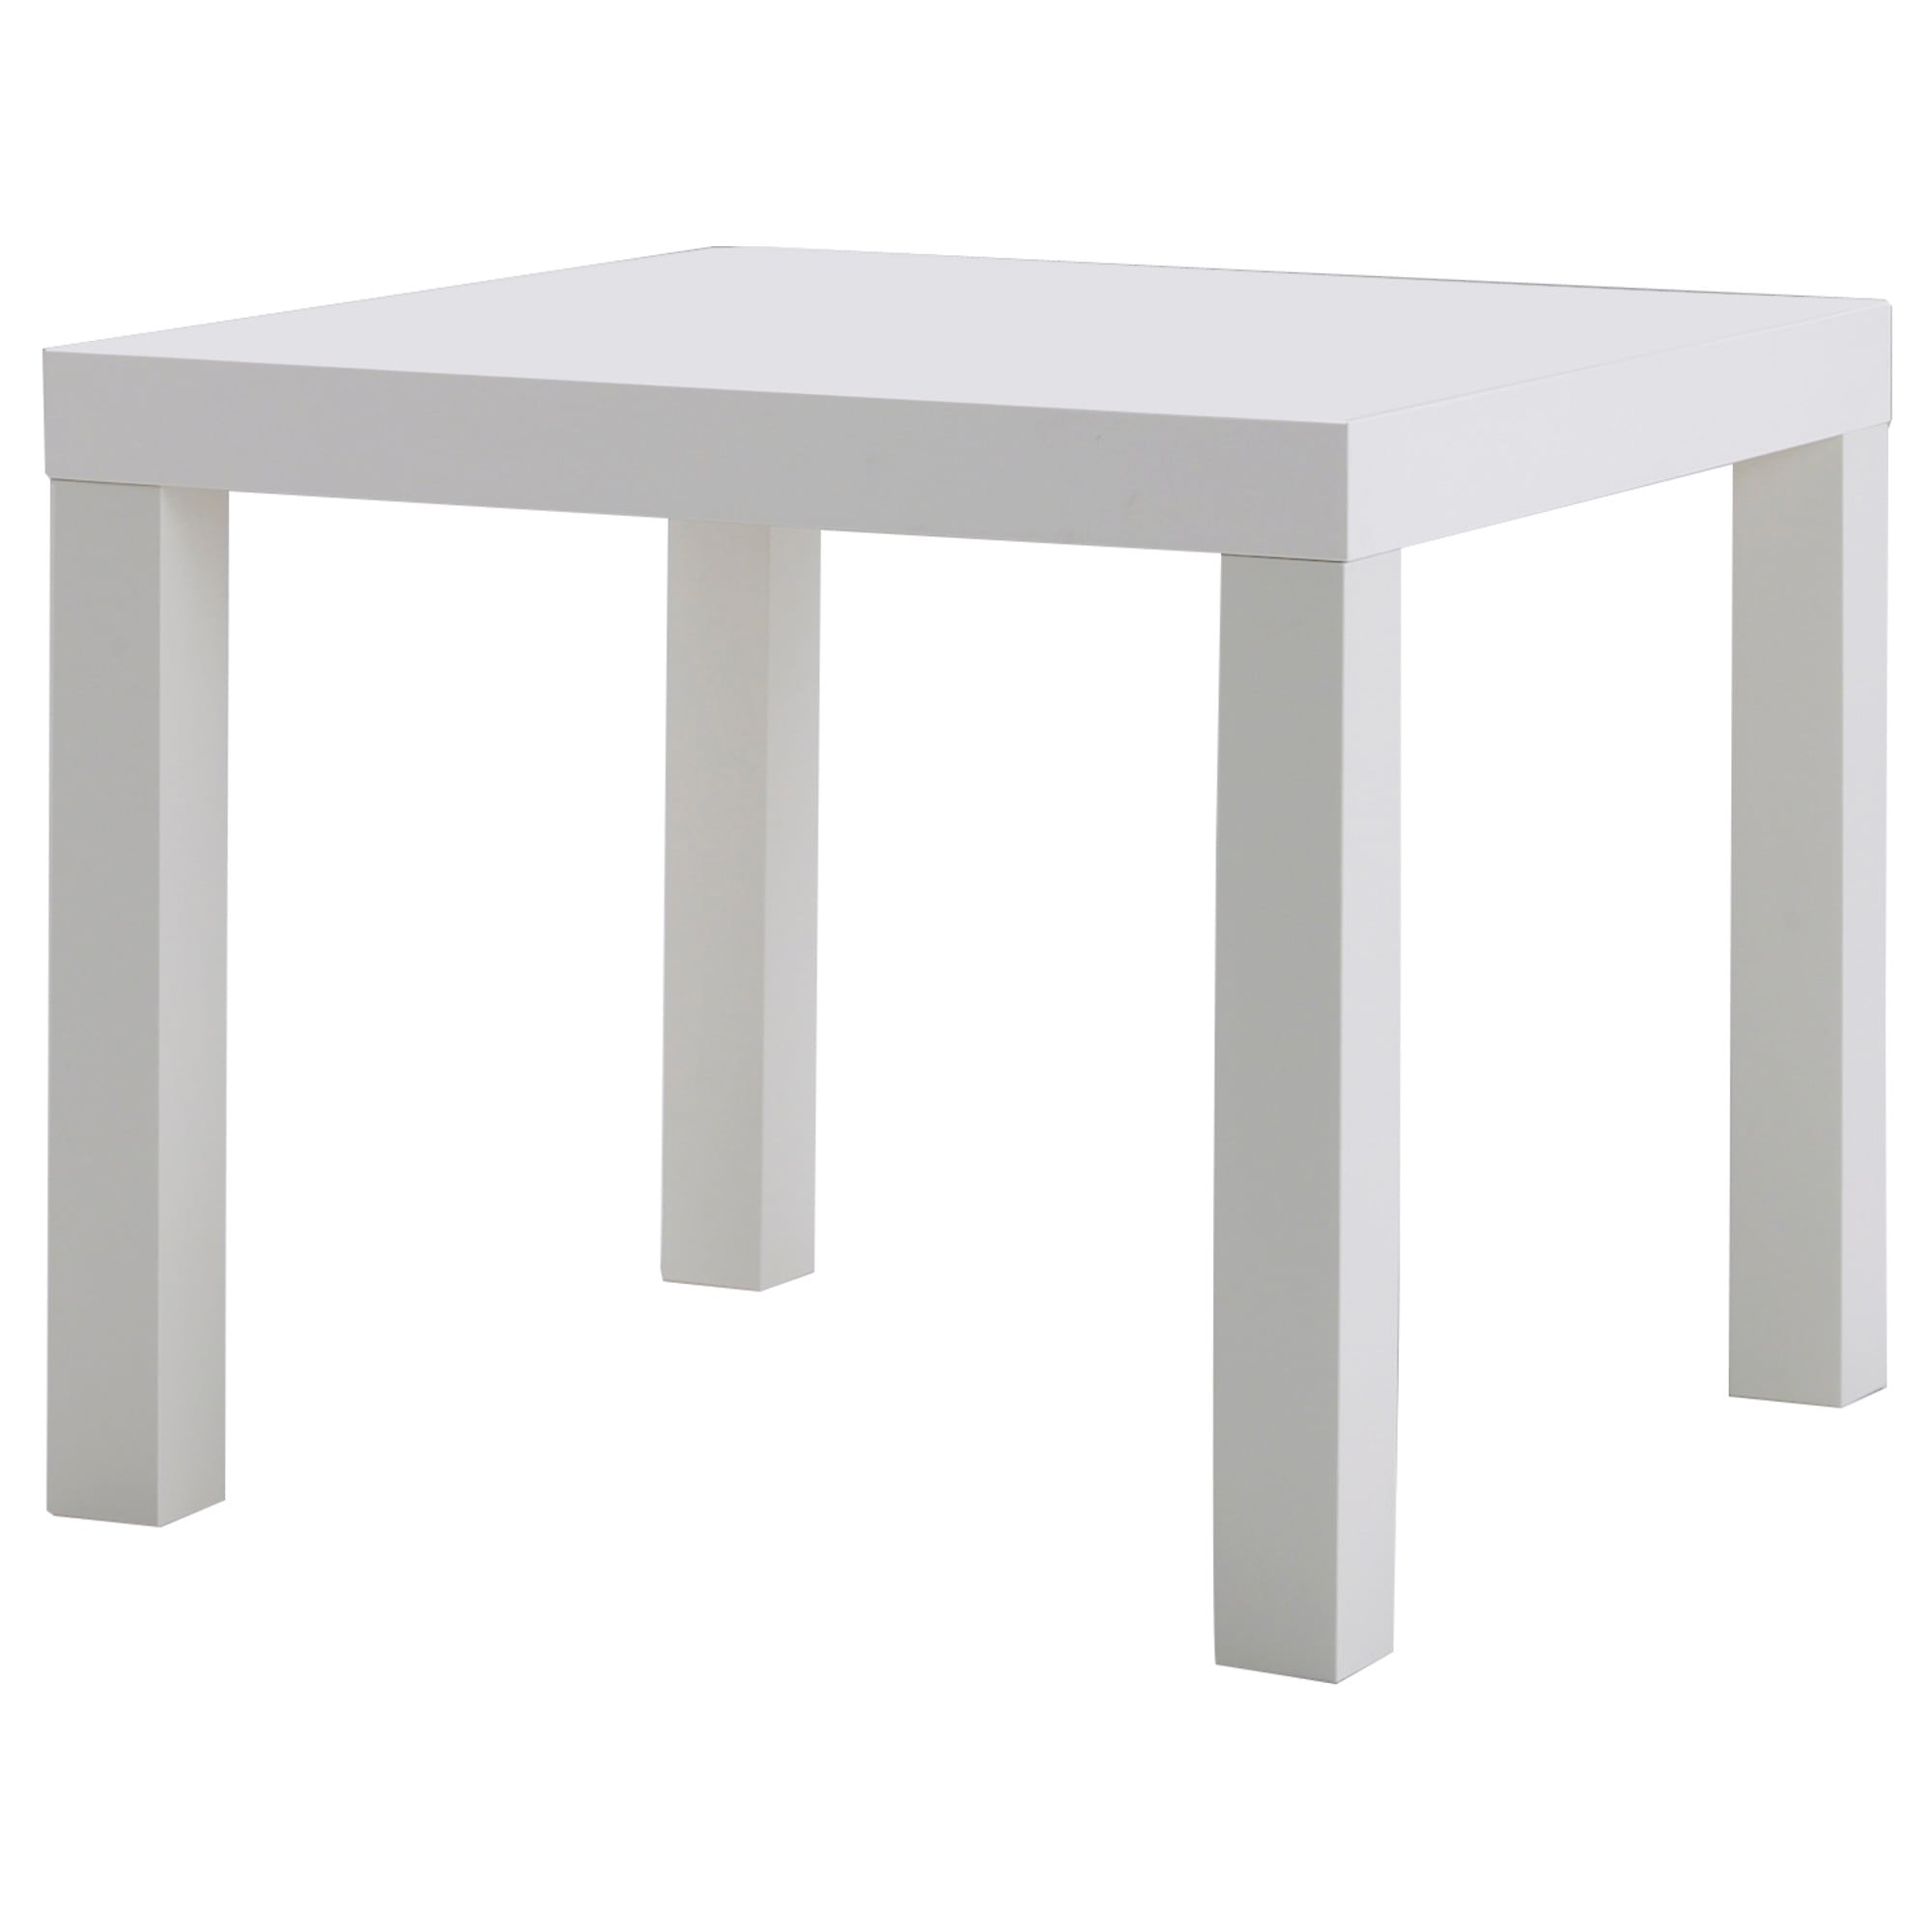 "LACK Side table birch effect 21 5 8x21 5 8 "" IKEA"